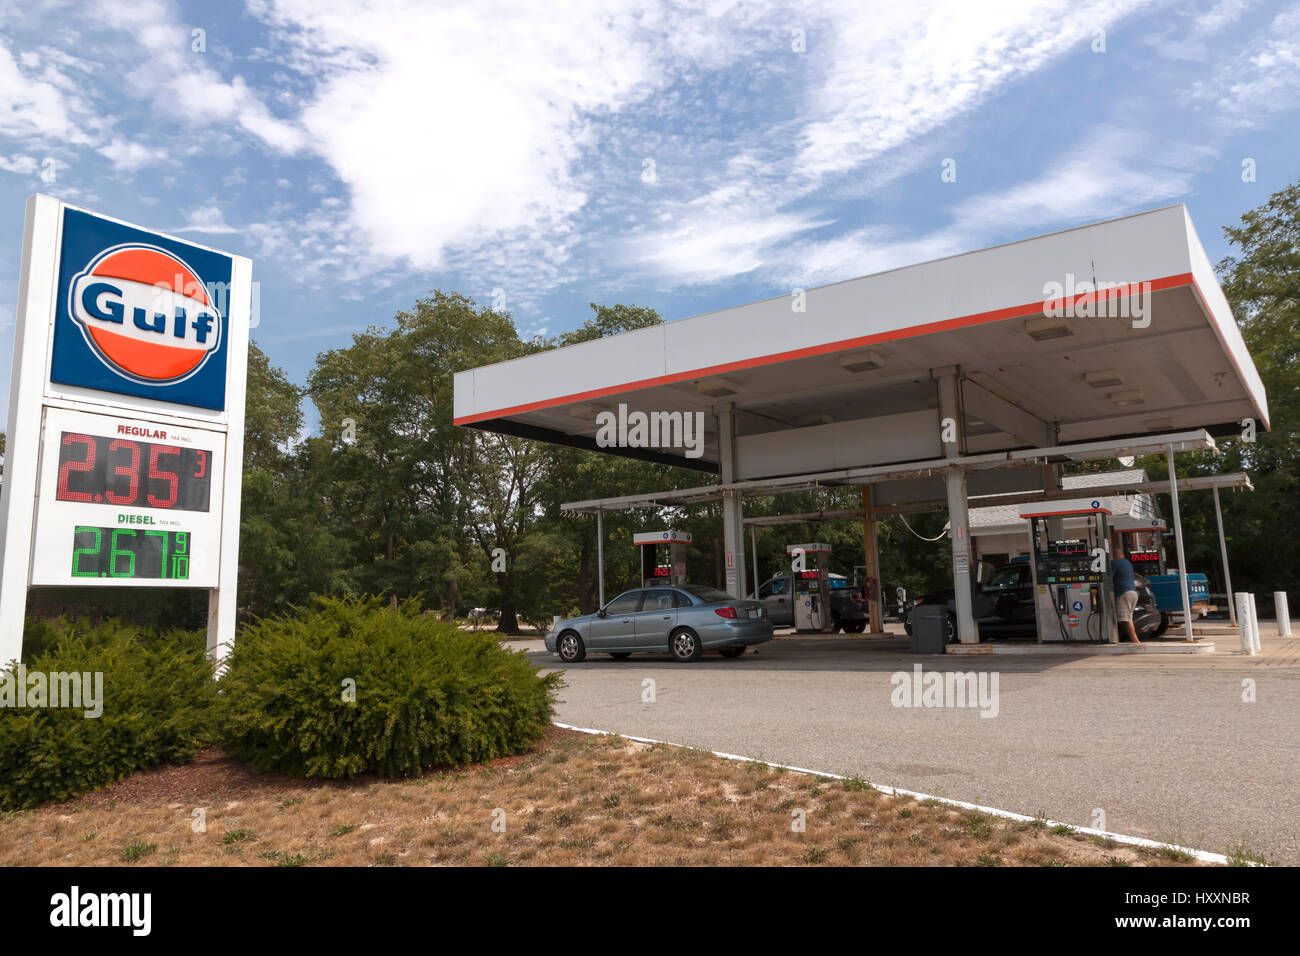 Gulf Gas Station Near Me >> Gulf Gas Station With Low Gasoline Prices On A Sign Stock